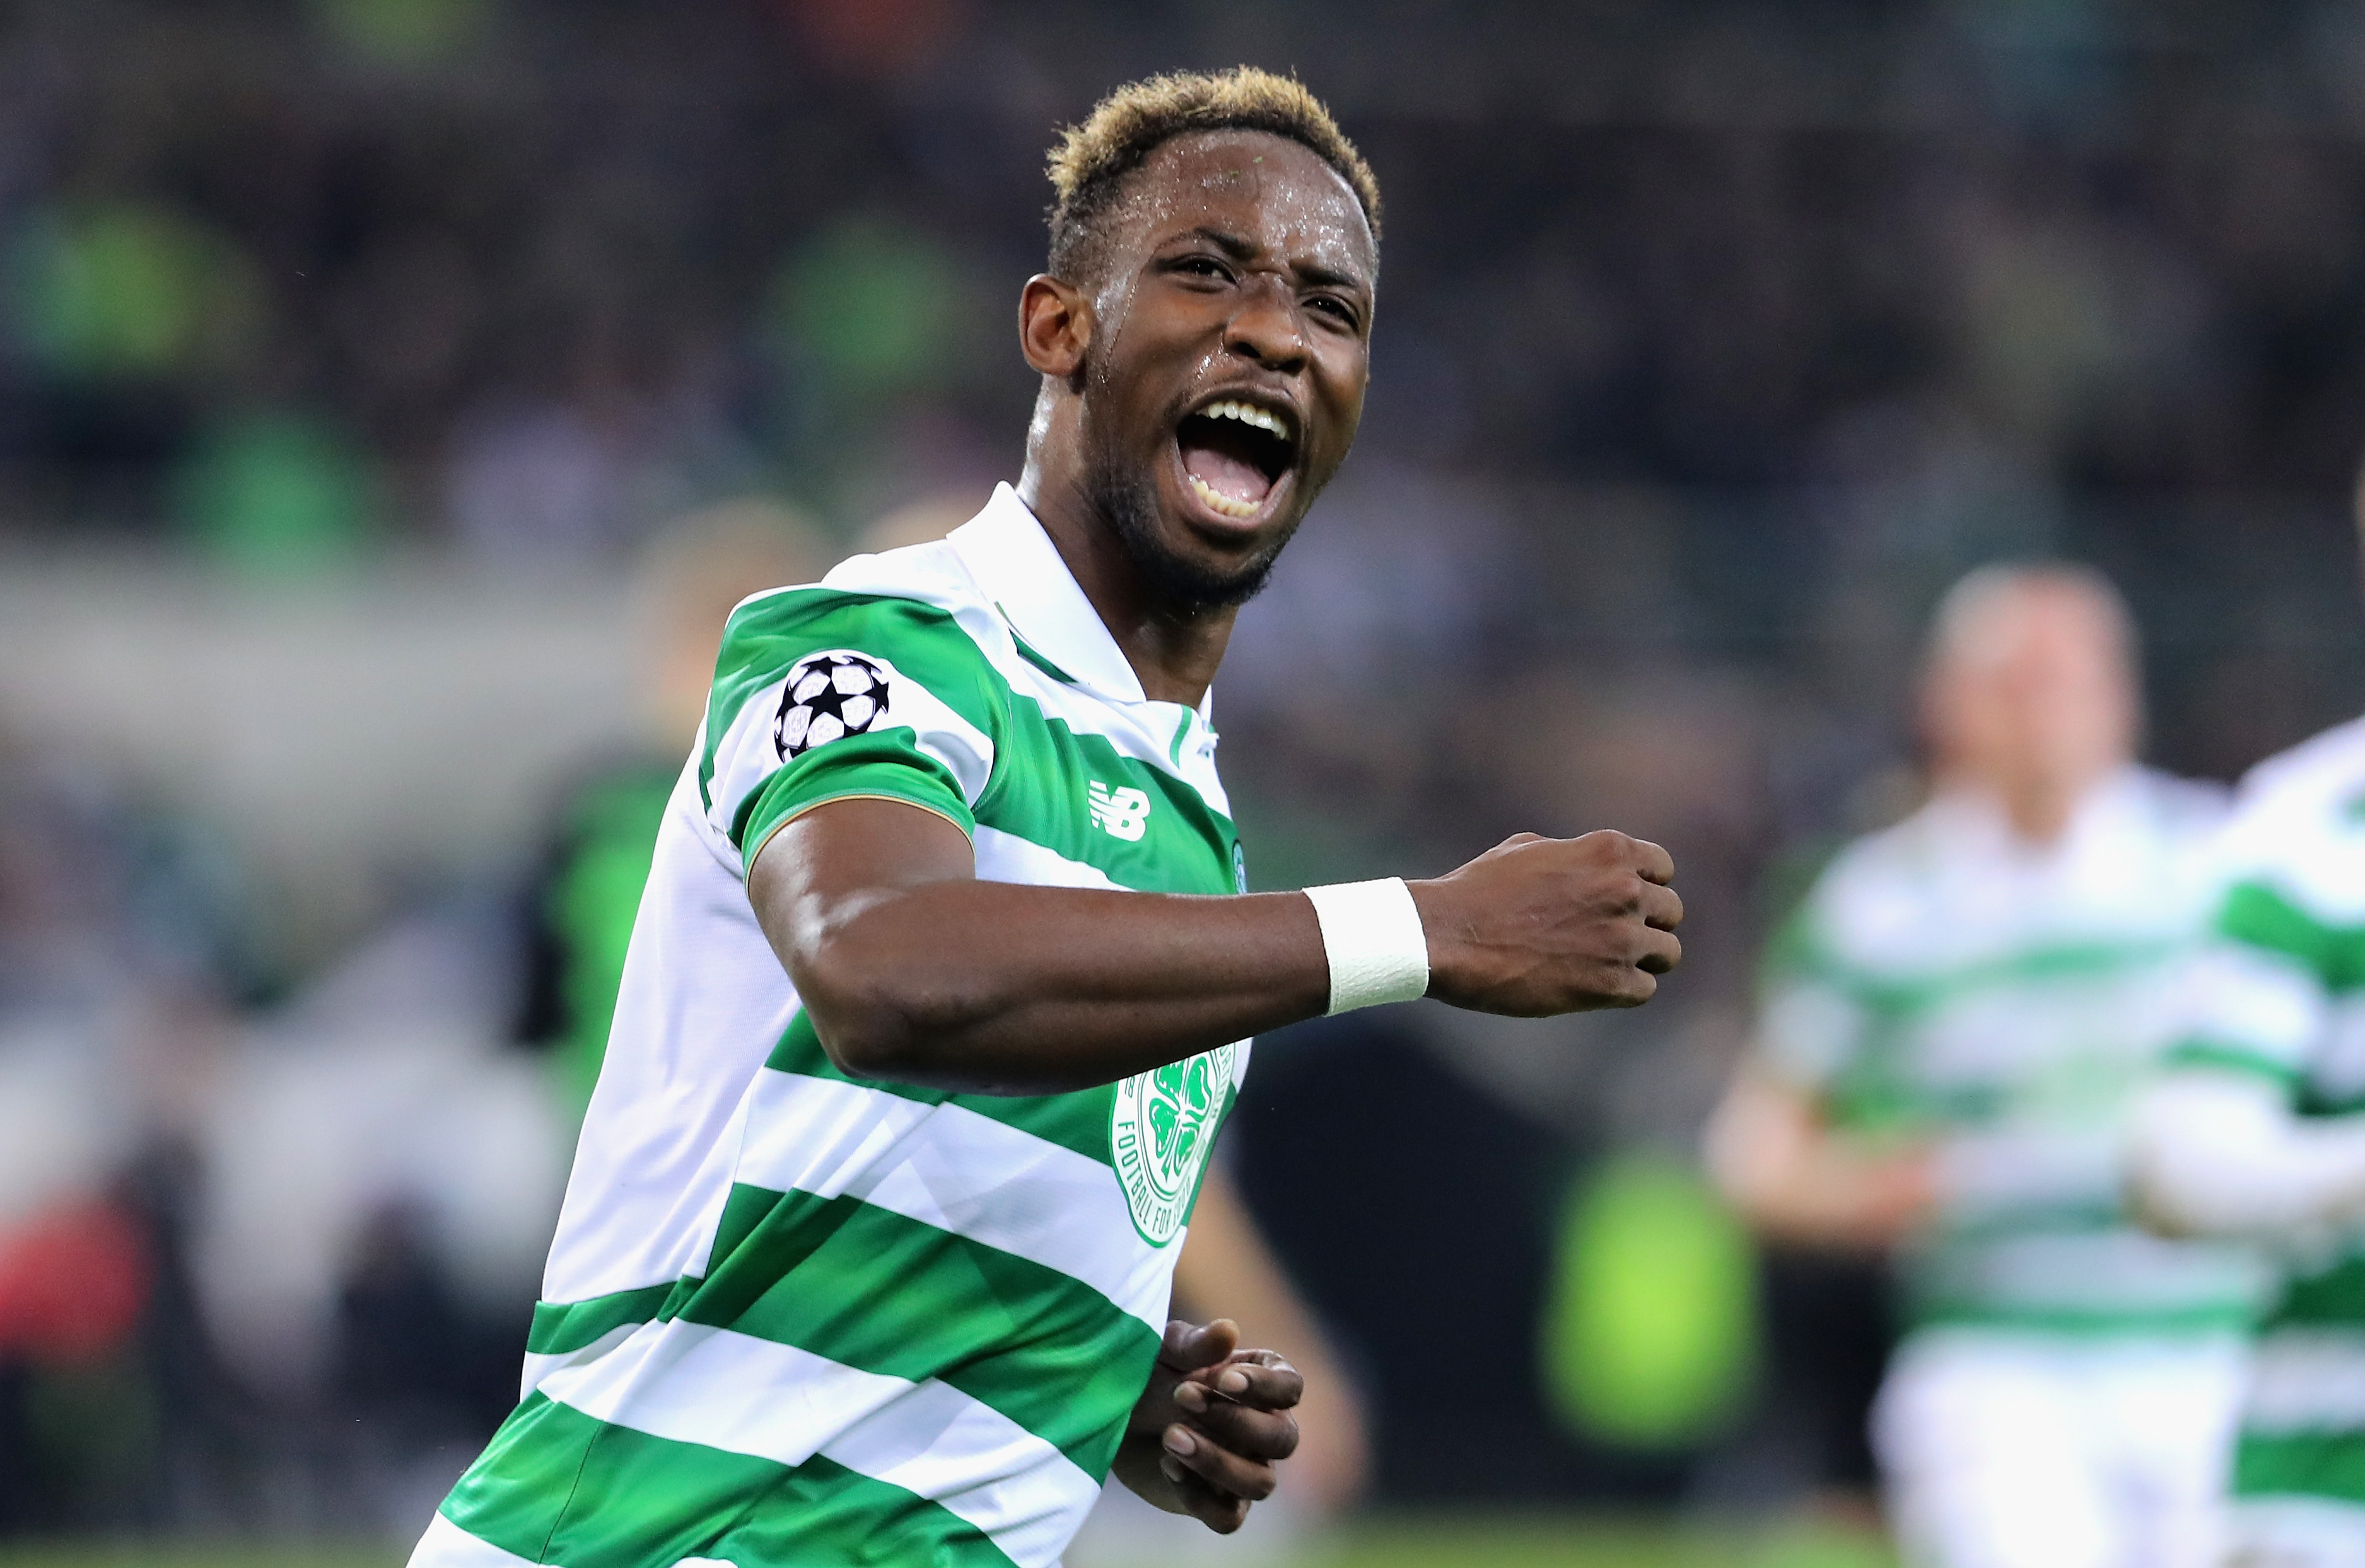 Moussa Dembele's agent breaks silence over £40m Chelsea transfer reports